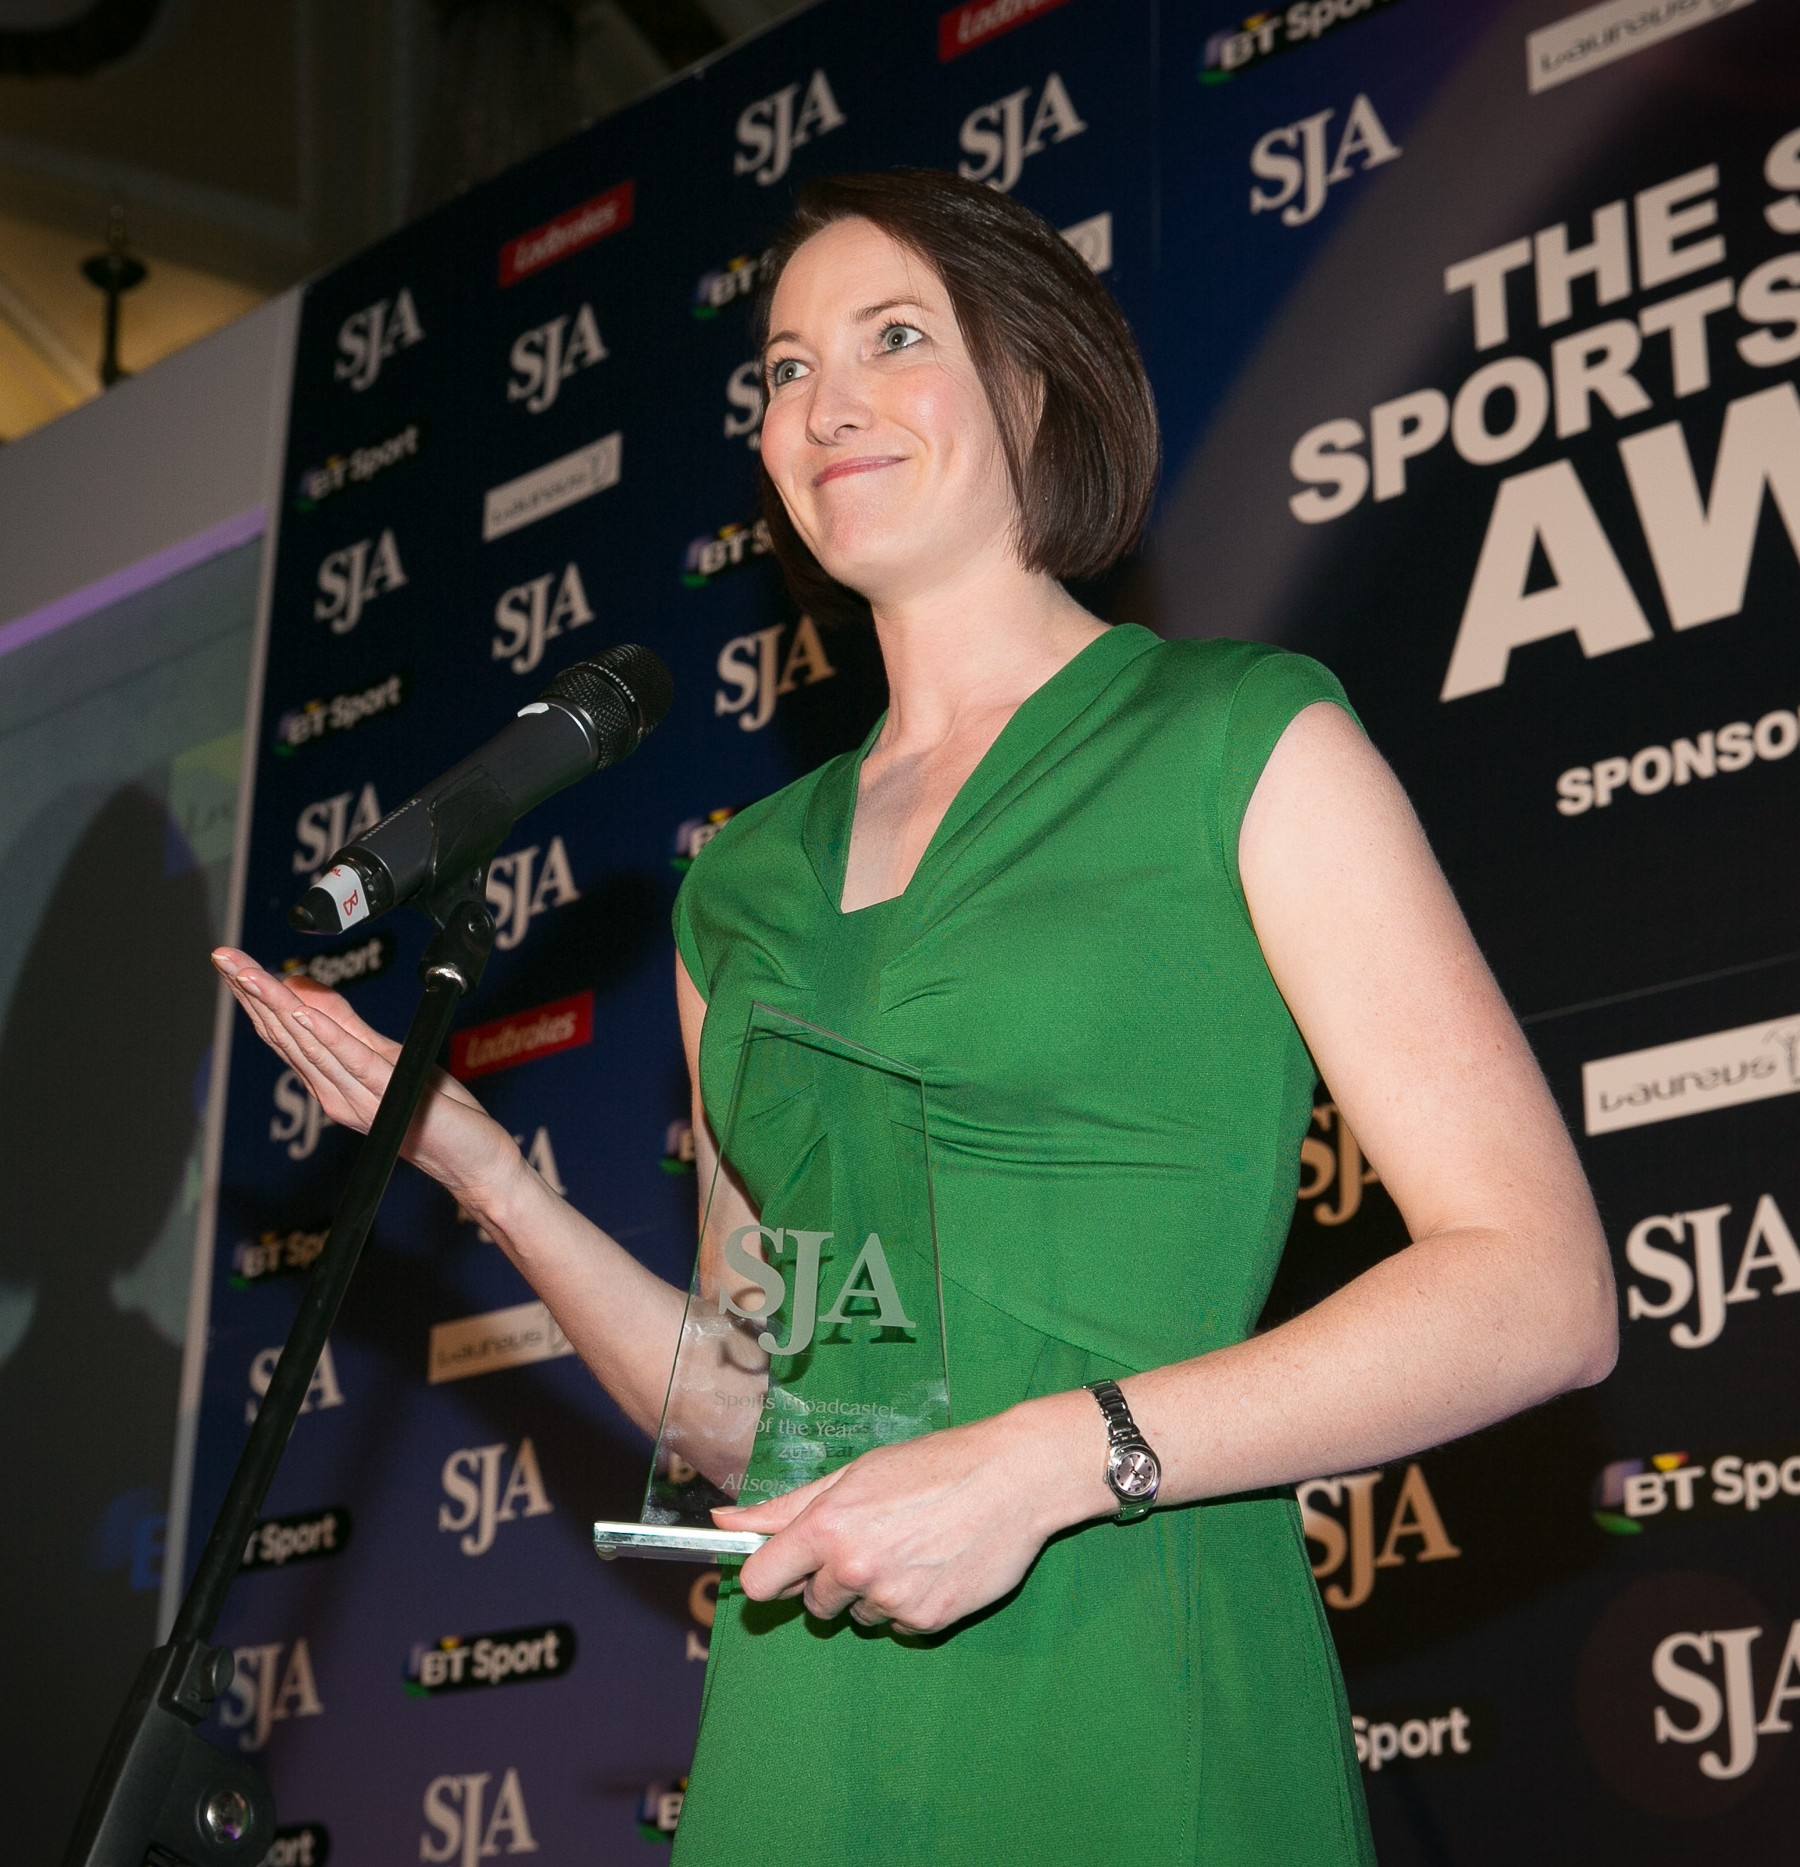 BBC Radio's Alison Mitchell was the SJA's Sports Broadcaster of the Year for 2013. In 2014, she an other top broadcasters are invited to enter their work